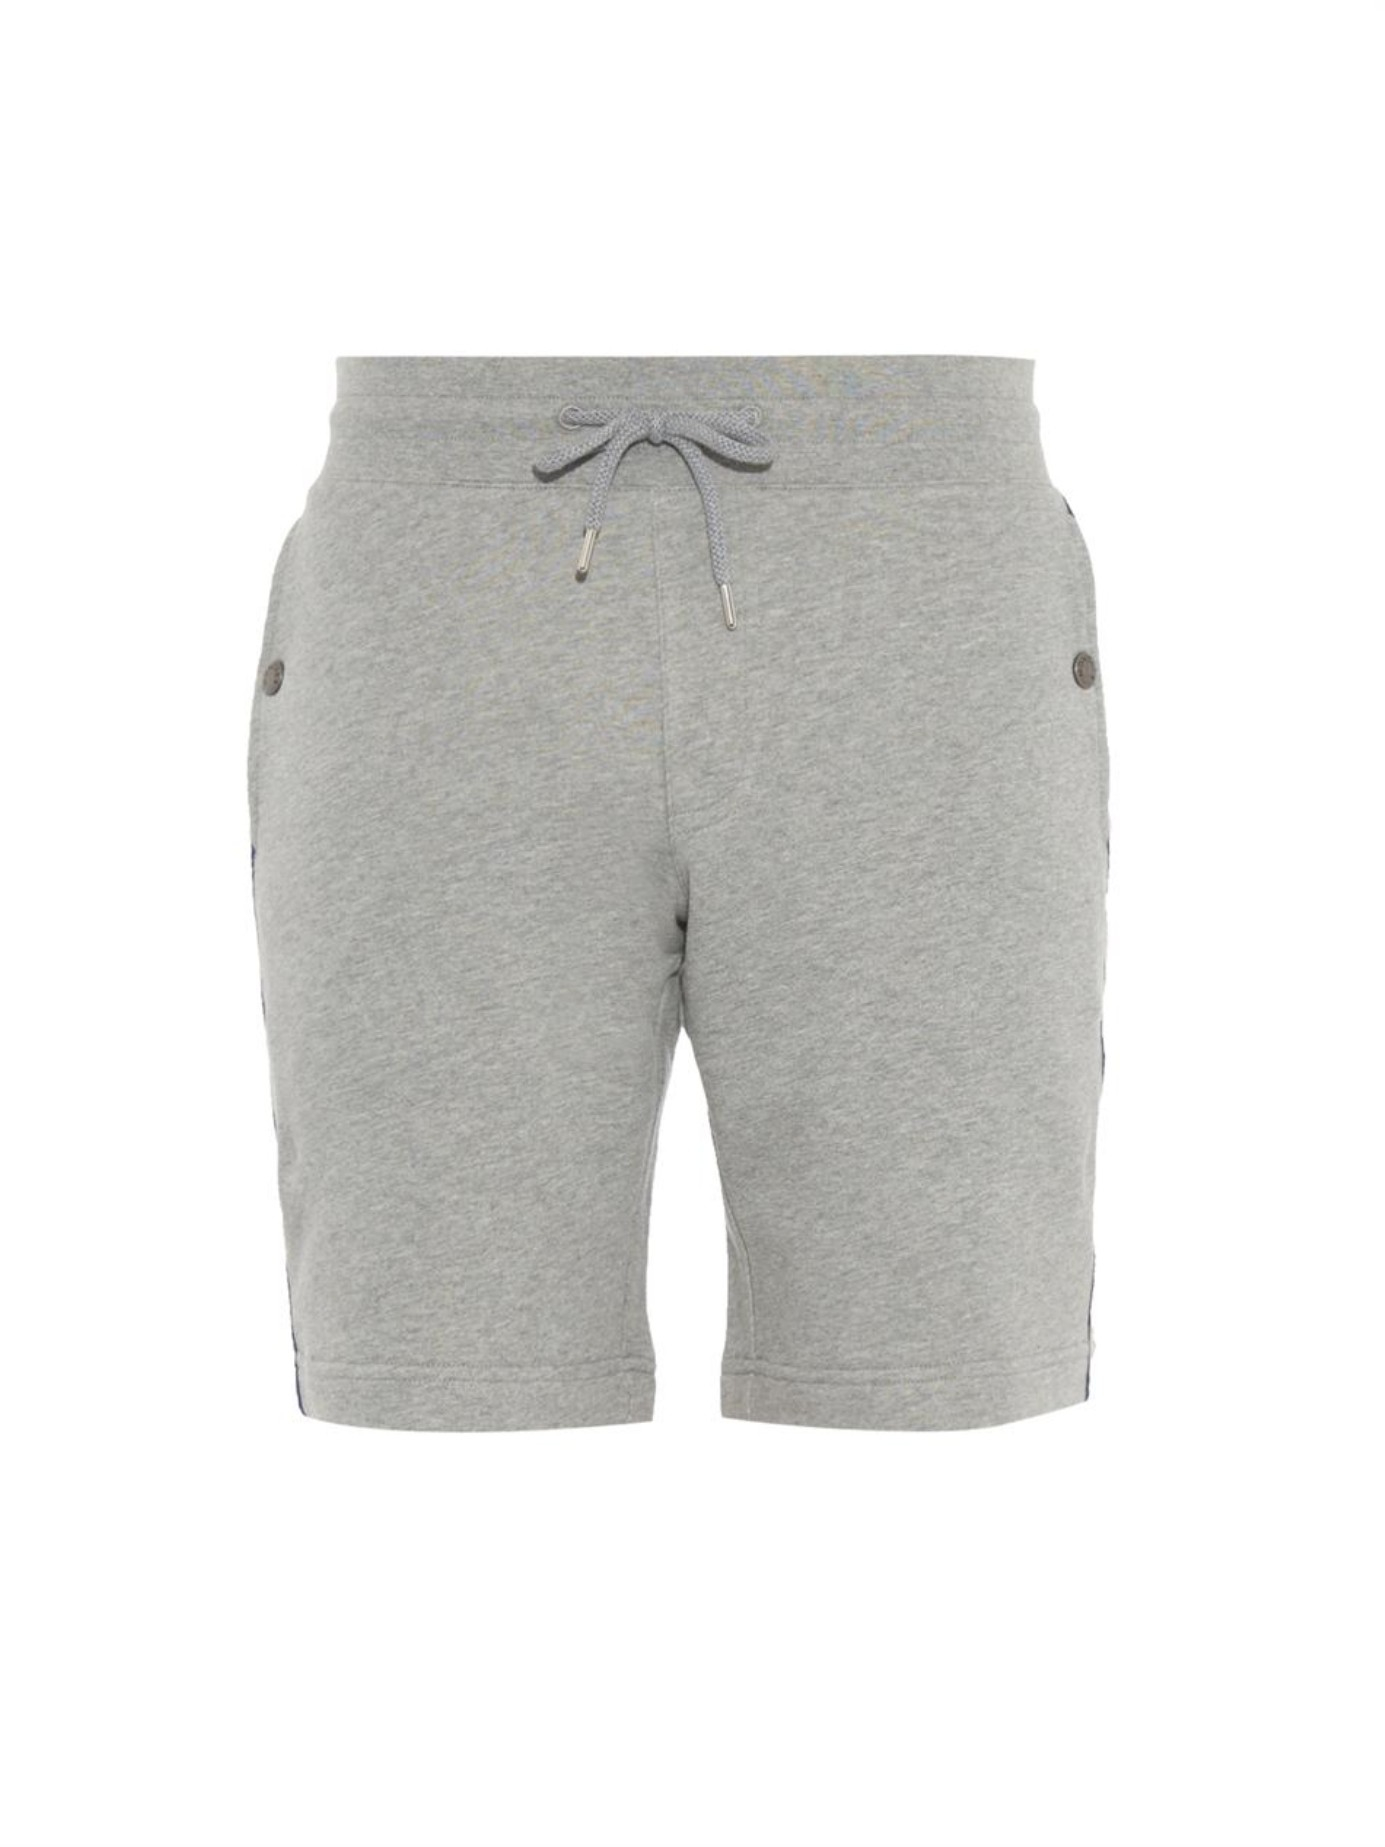 8a10406a7396 Moncler Side-Stripe Jersey Track Shorts in Gray for Men - Lyst